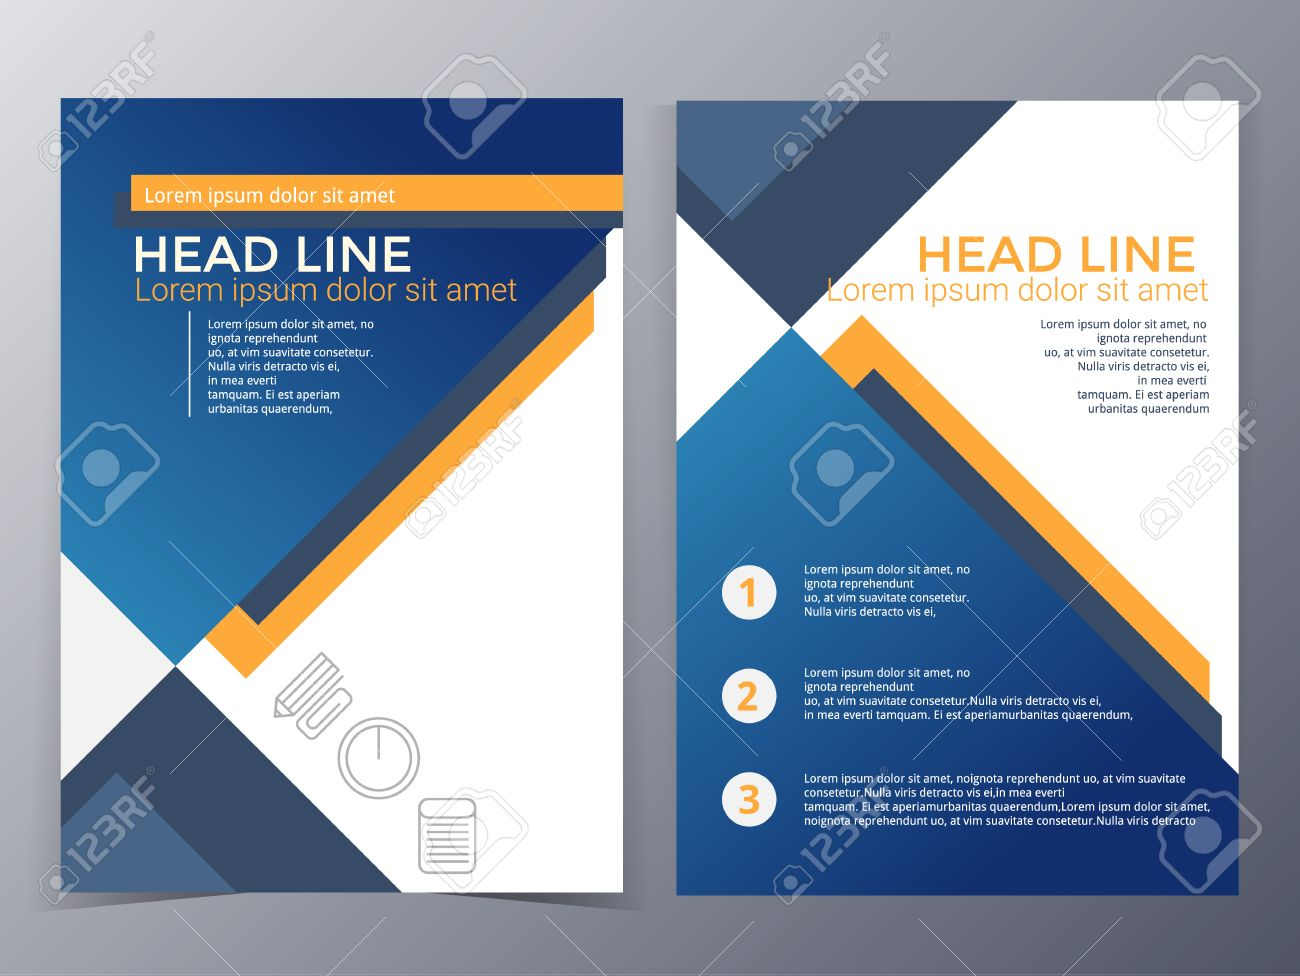 A4 Size Poster Design